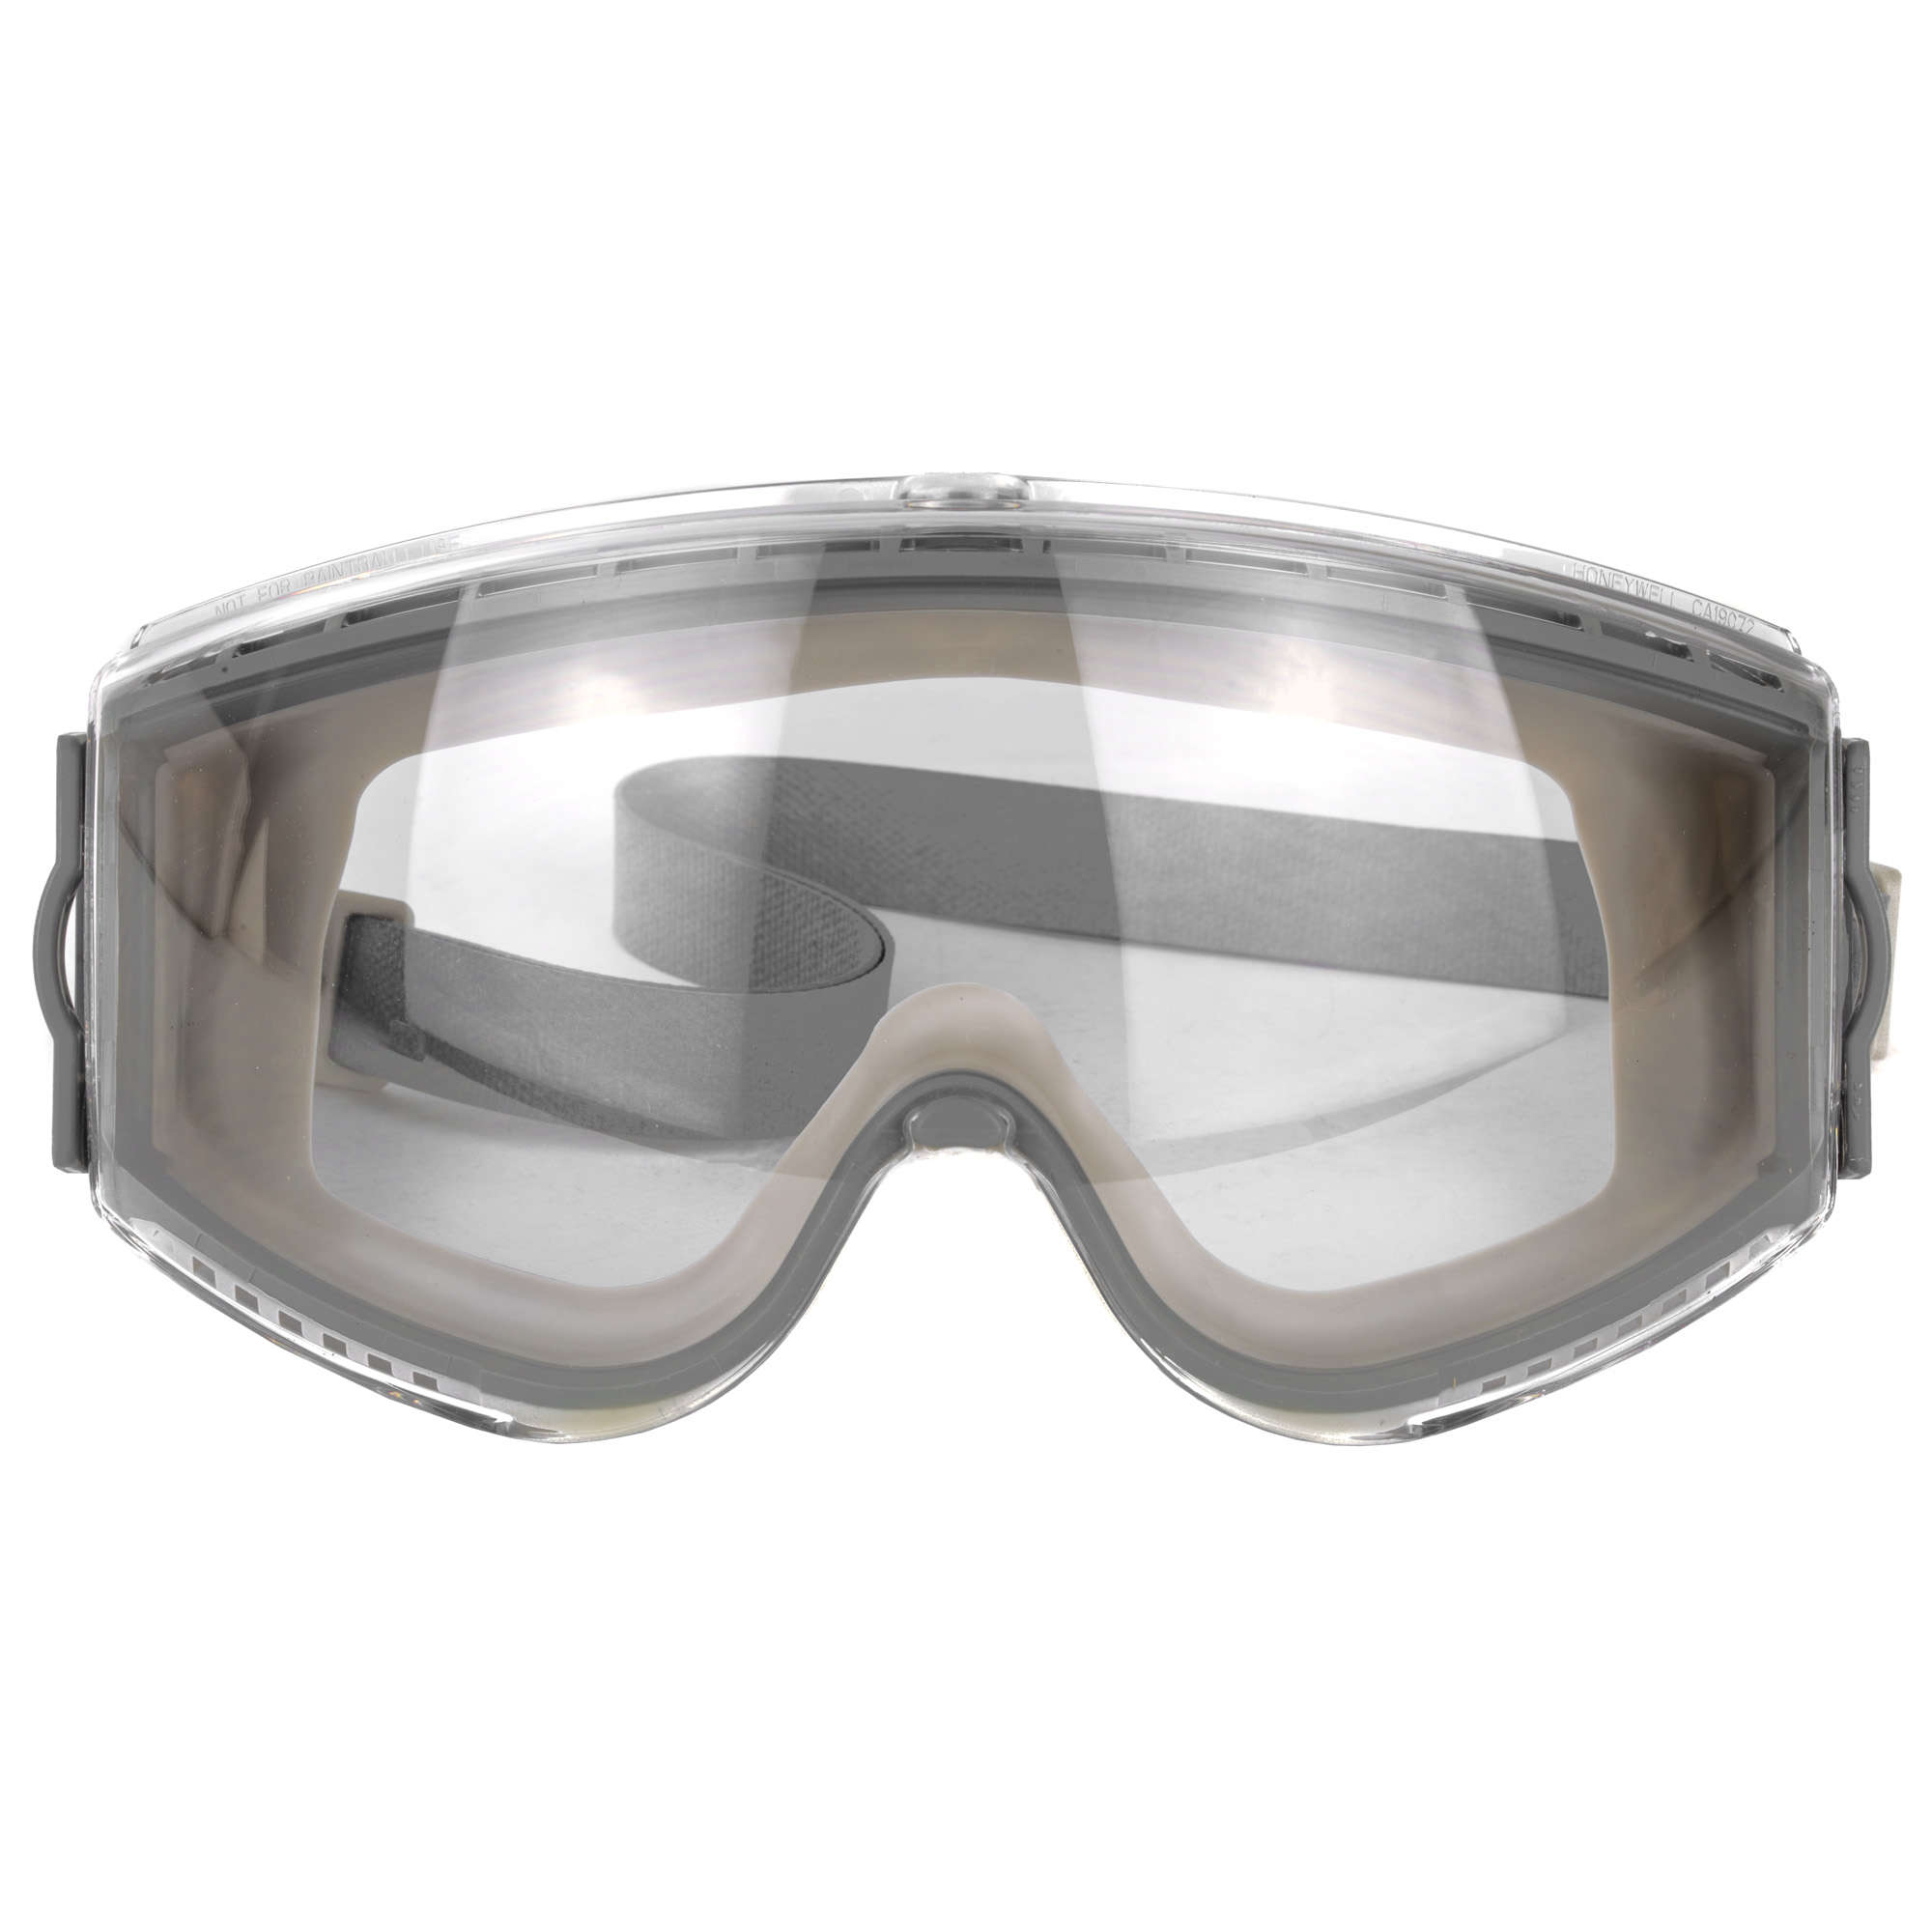 Uvex Stealth is the most popular goggle on the market. Its high end styling and comfort offers unmatched protection from chemical splash and impact.